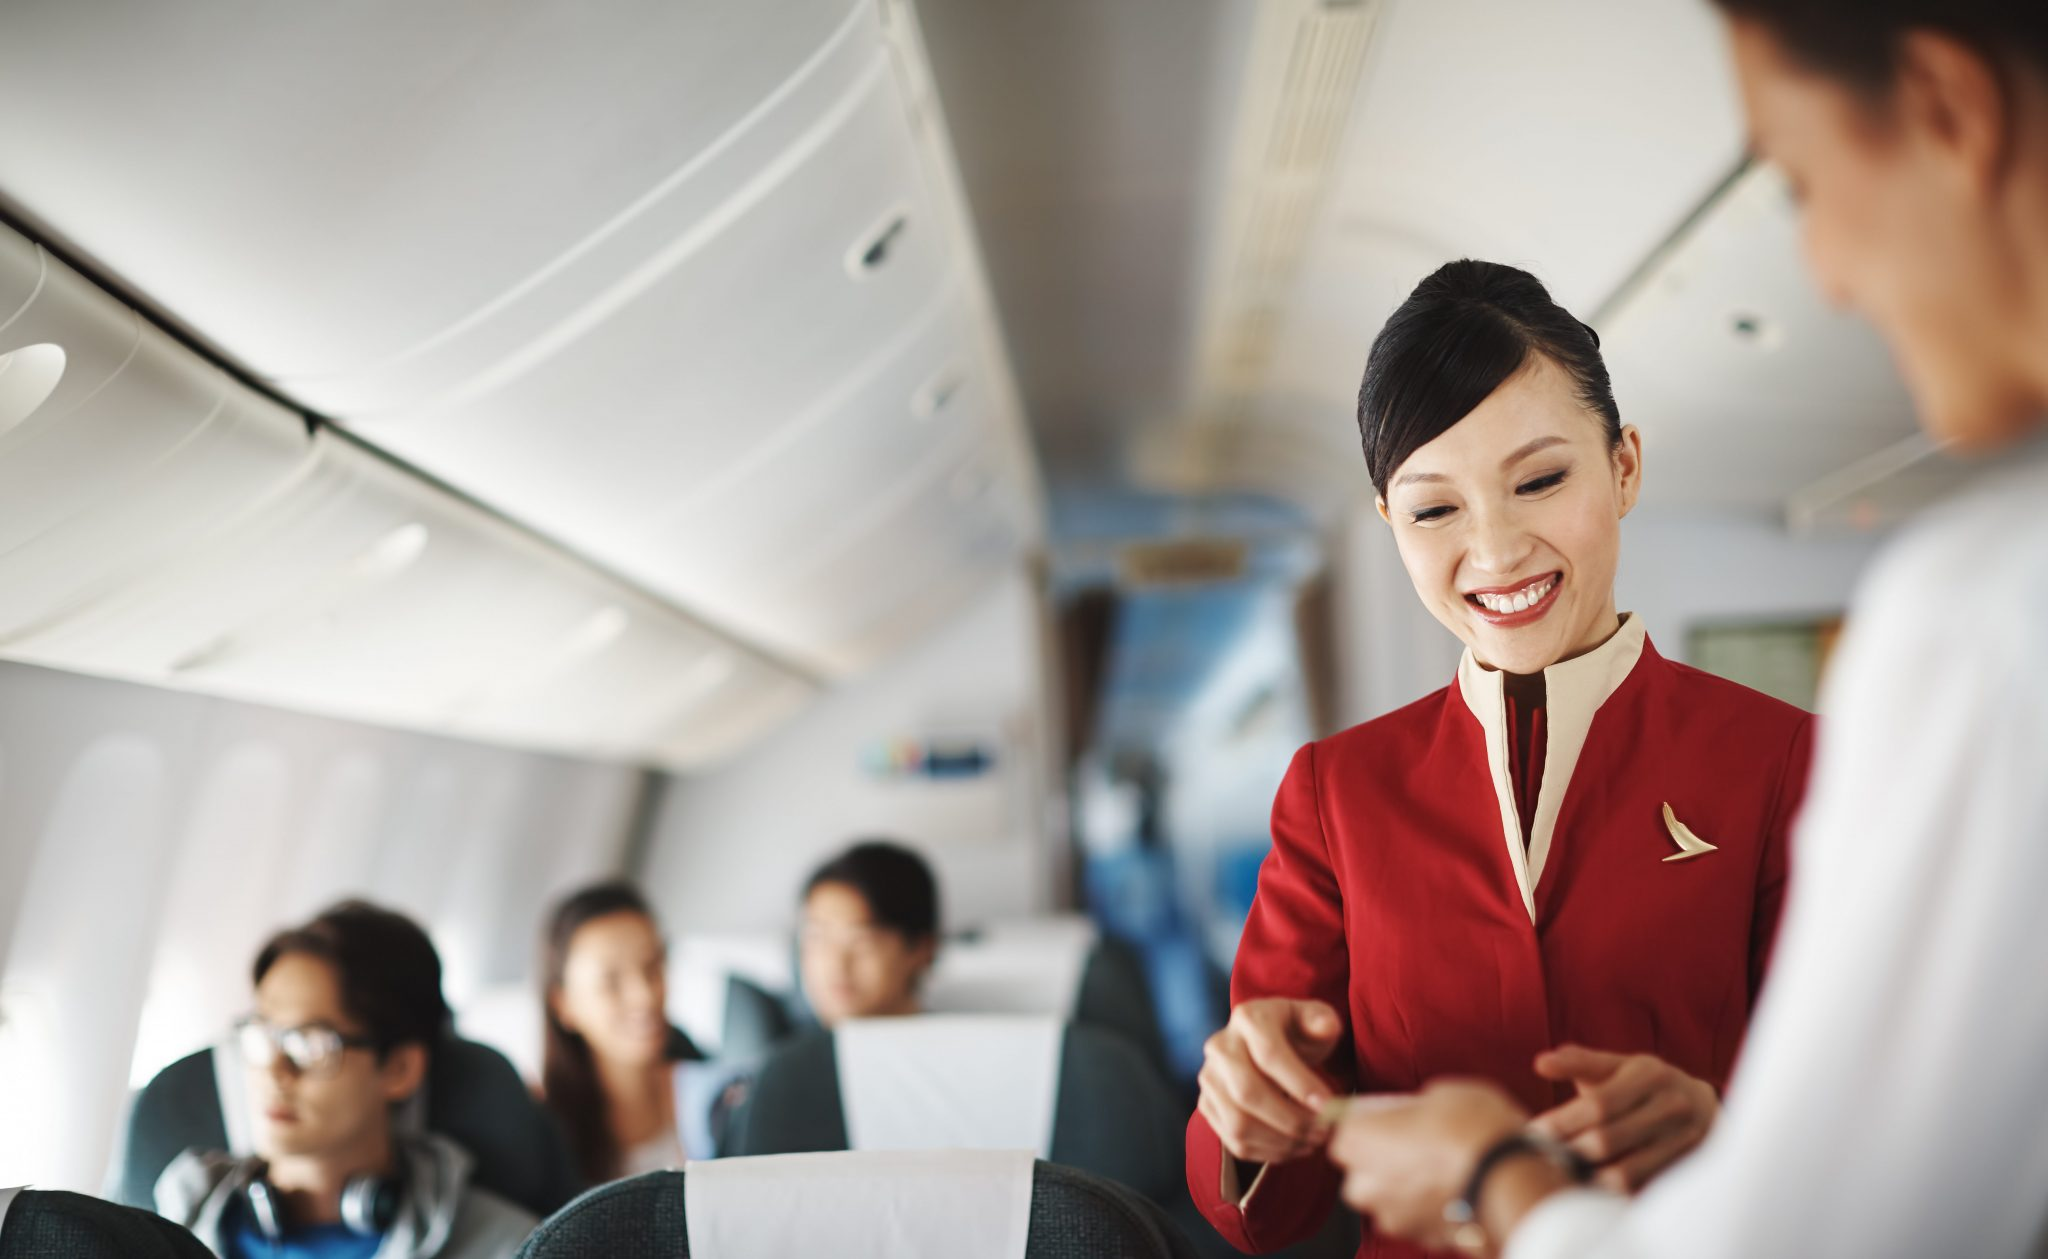 How Old is Too Old to Work as Cabin Crew? That's the Decision Cathay Pacific Flight Attendants Have to Make